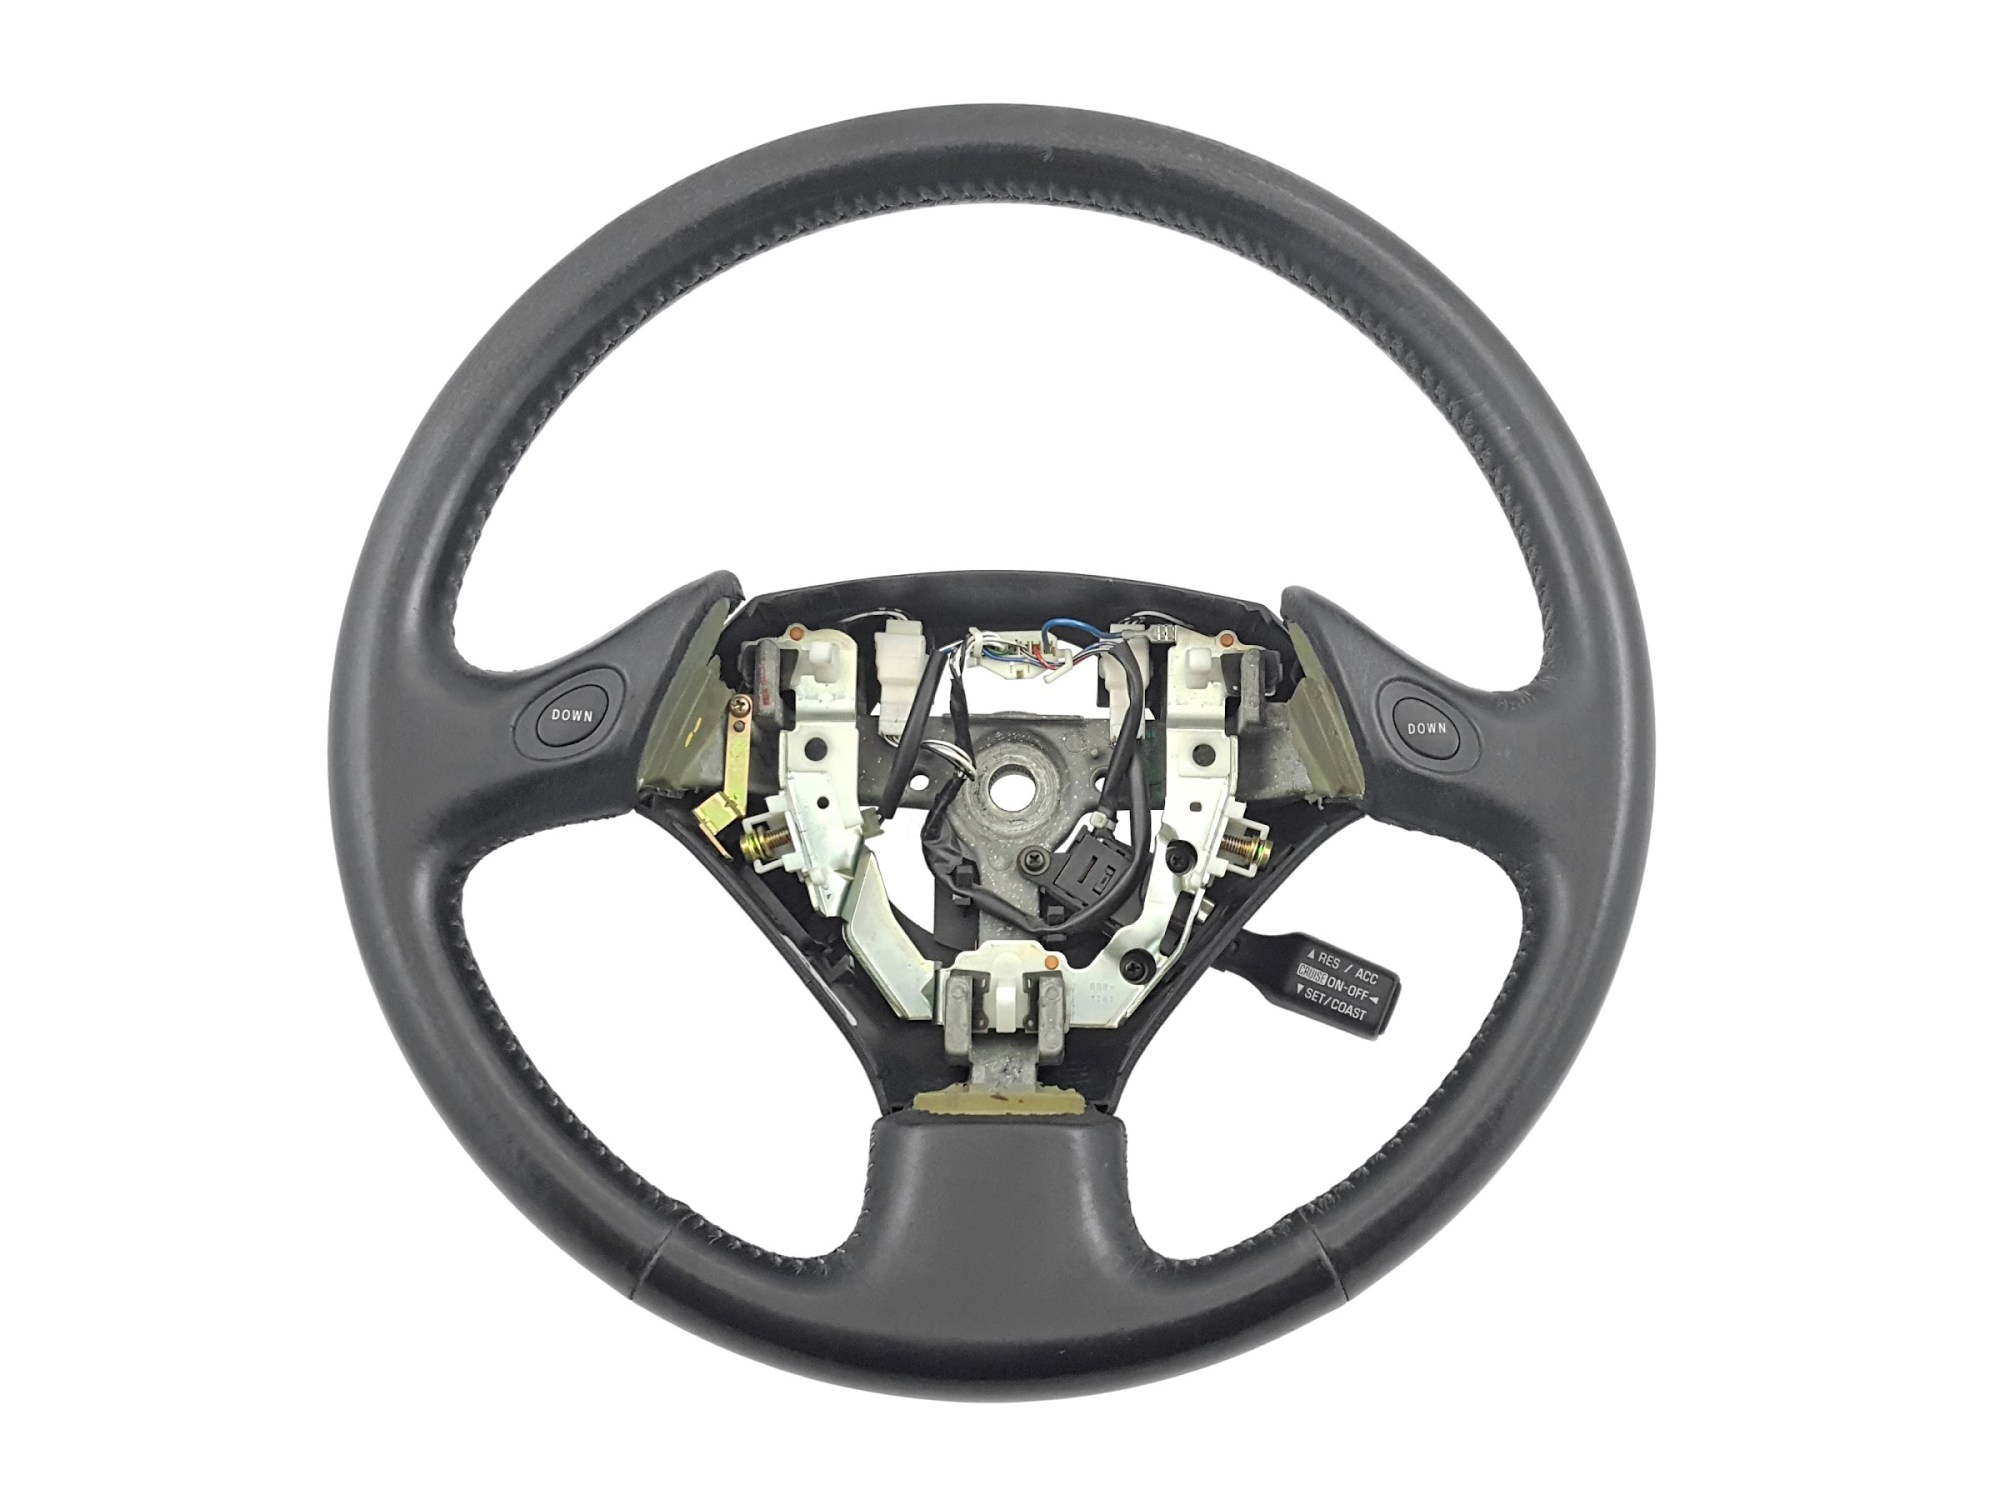 hight resolution of details about 98 05 lexus gs300 gs400 gs430 oem black leather steering wheel cruise aristo 2jz